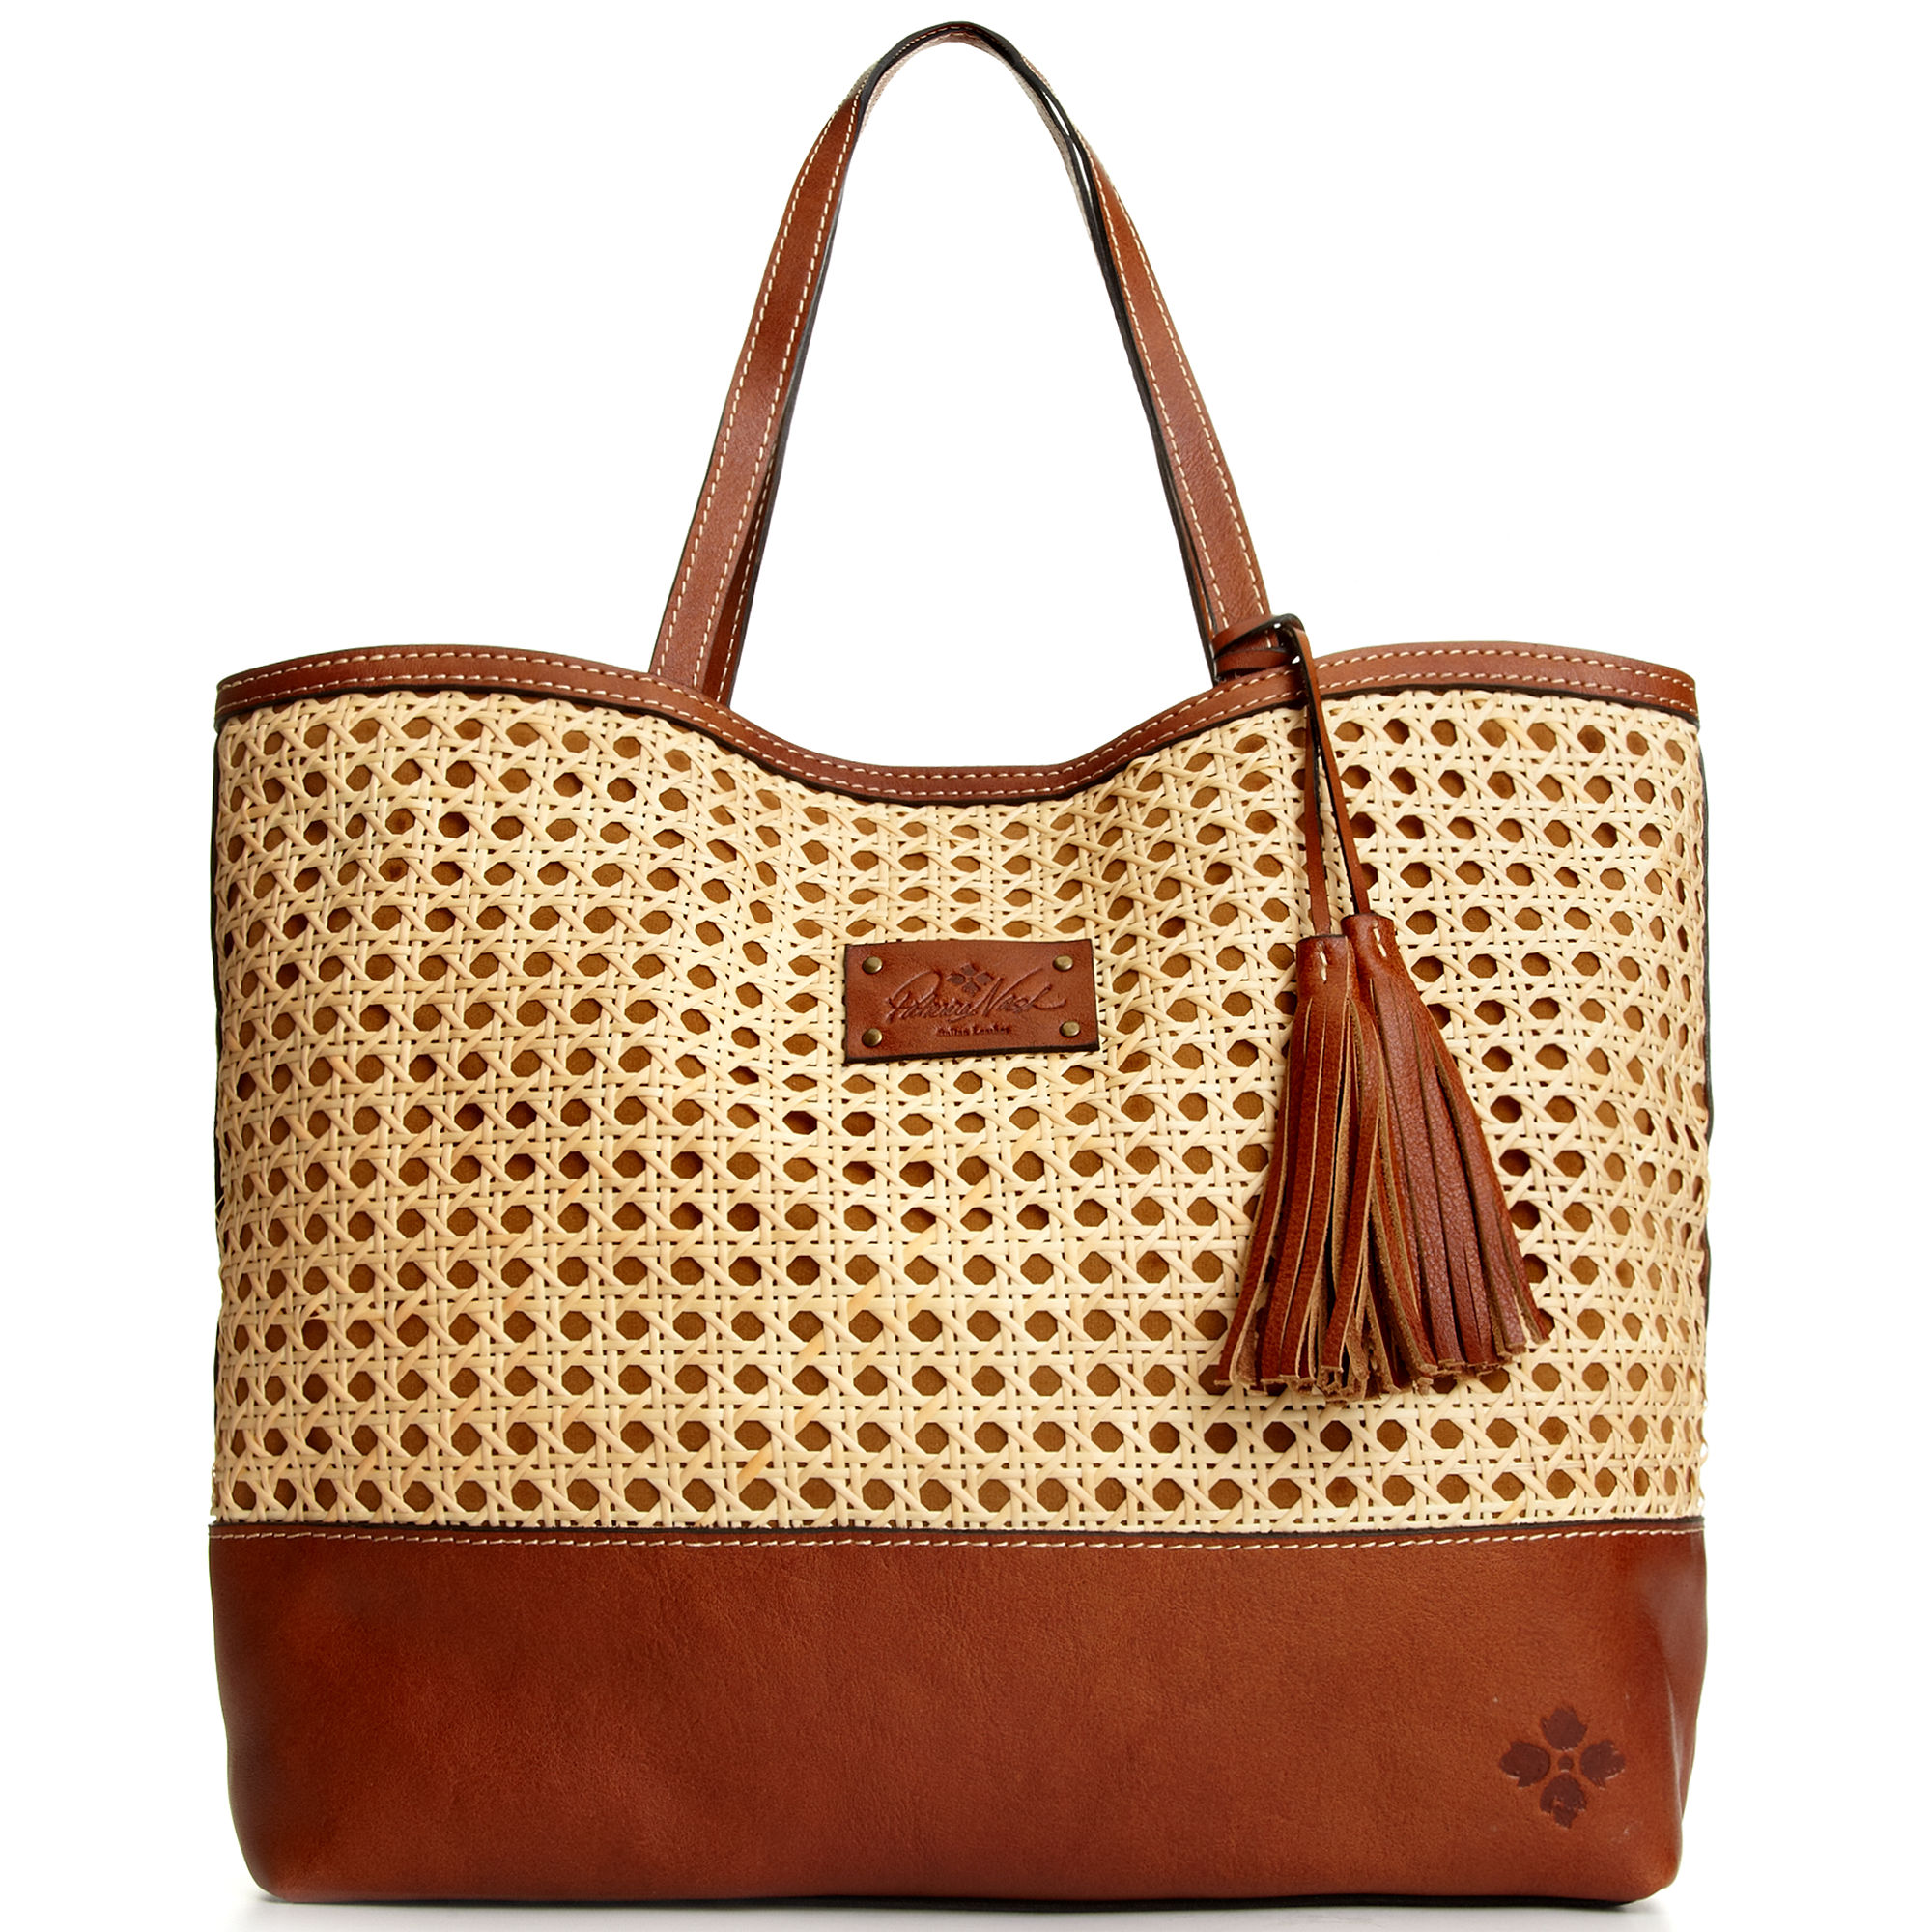 94dd7b827 Patricia Nash Wicker Londra Tote in Brown - Lyst